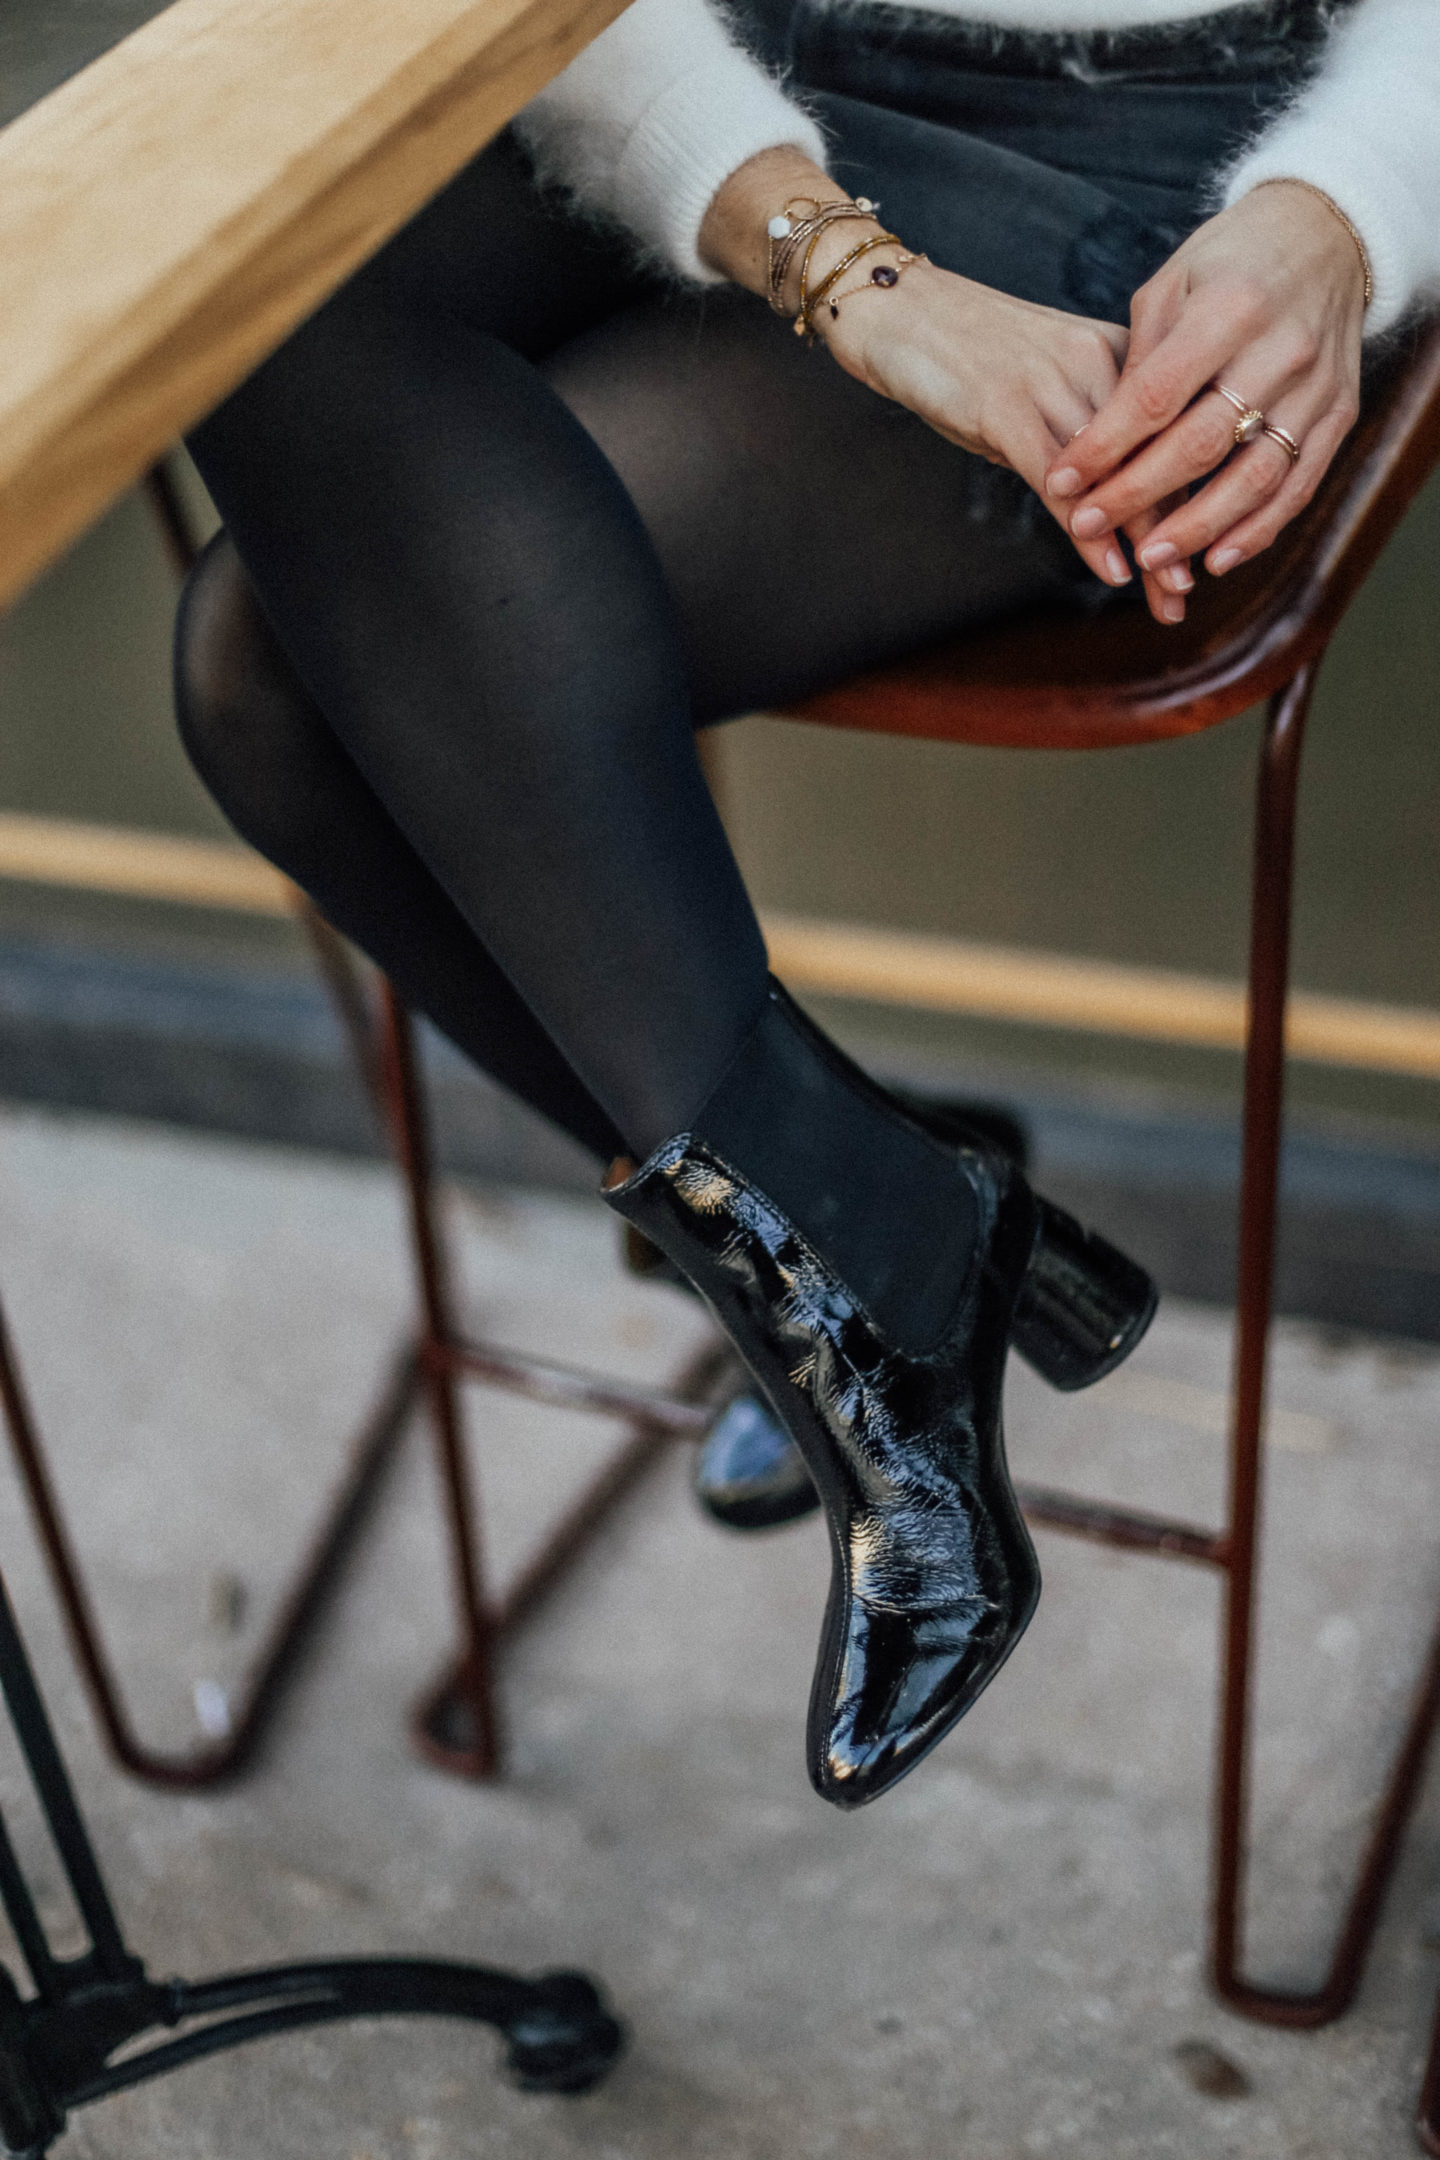 Boots noires vernies & Other Stories - Blondie Baby blog mode et voyages